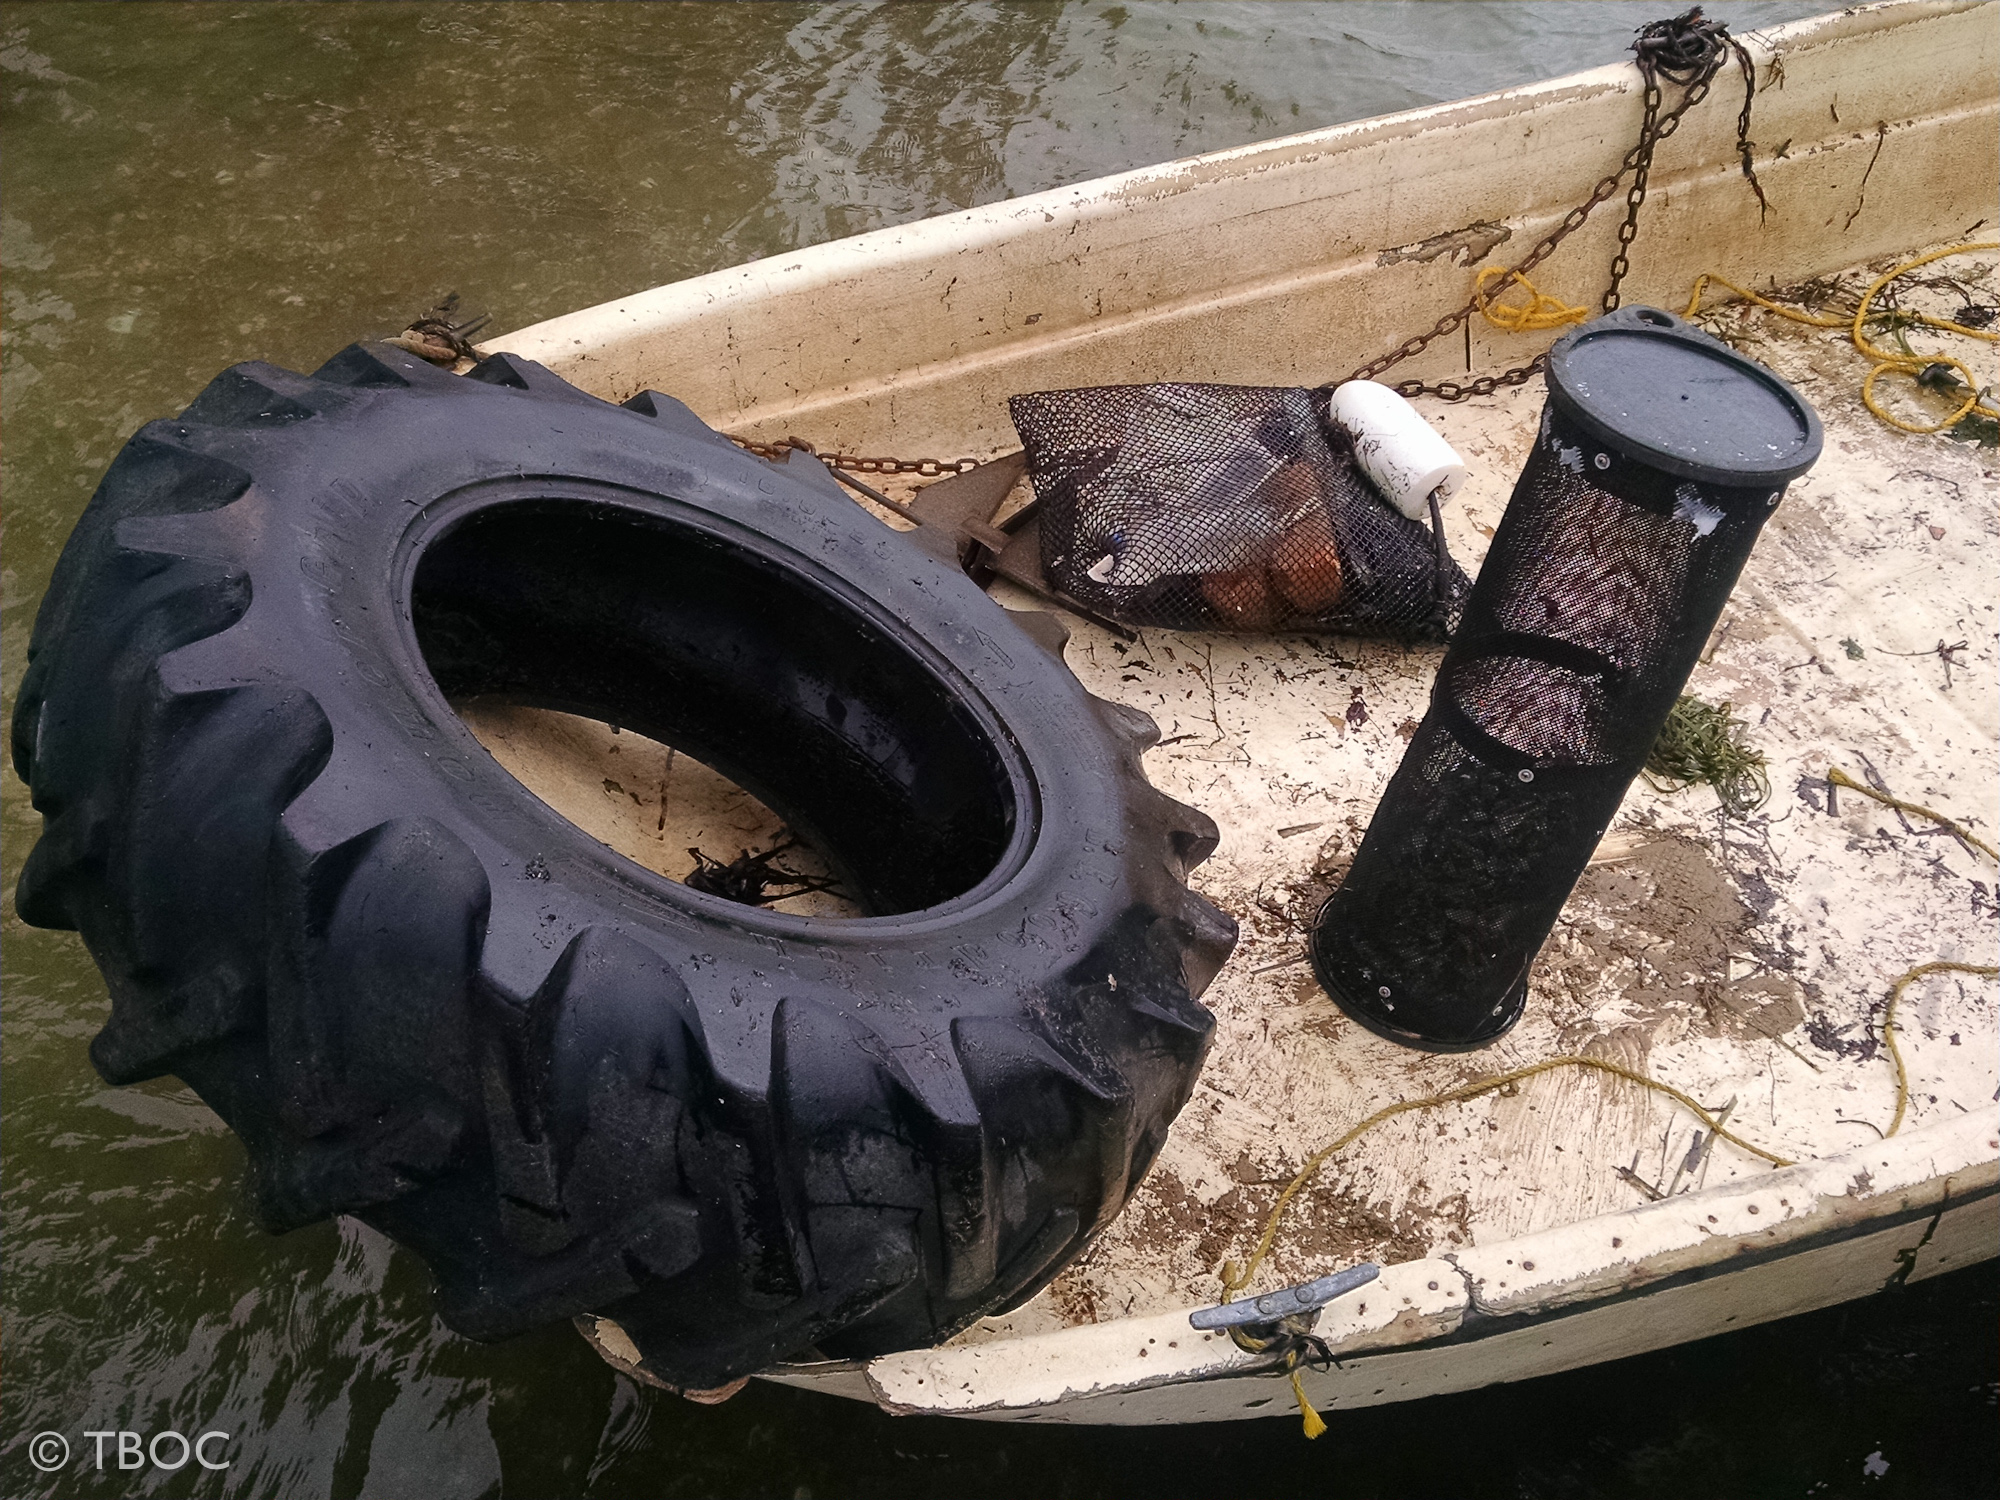 Tractor tire, lost oyster gear - all picked up by TBOC workers Dec. 2015.